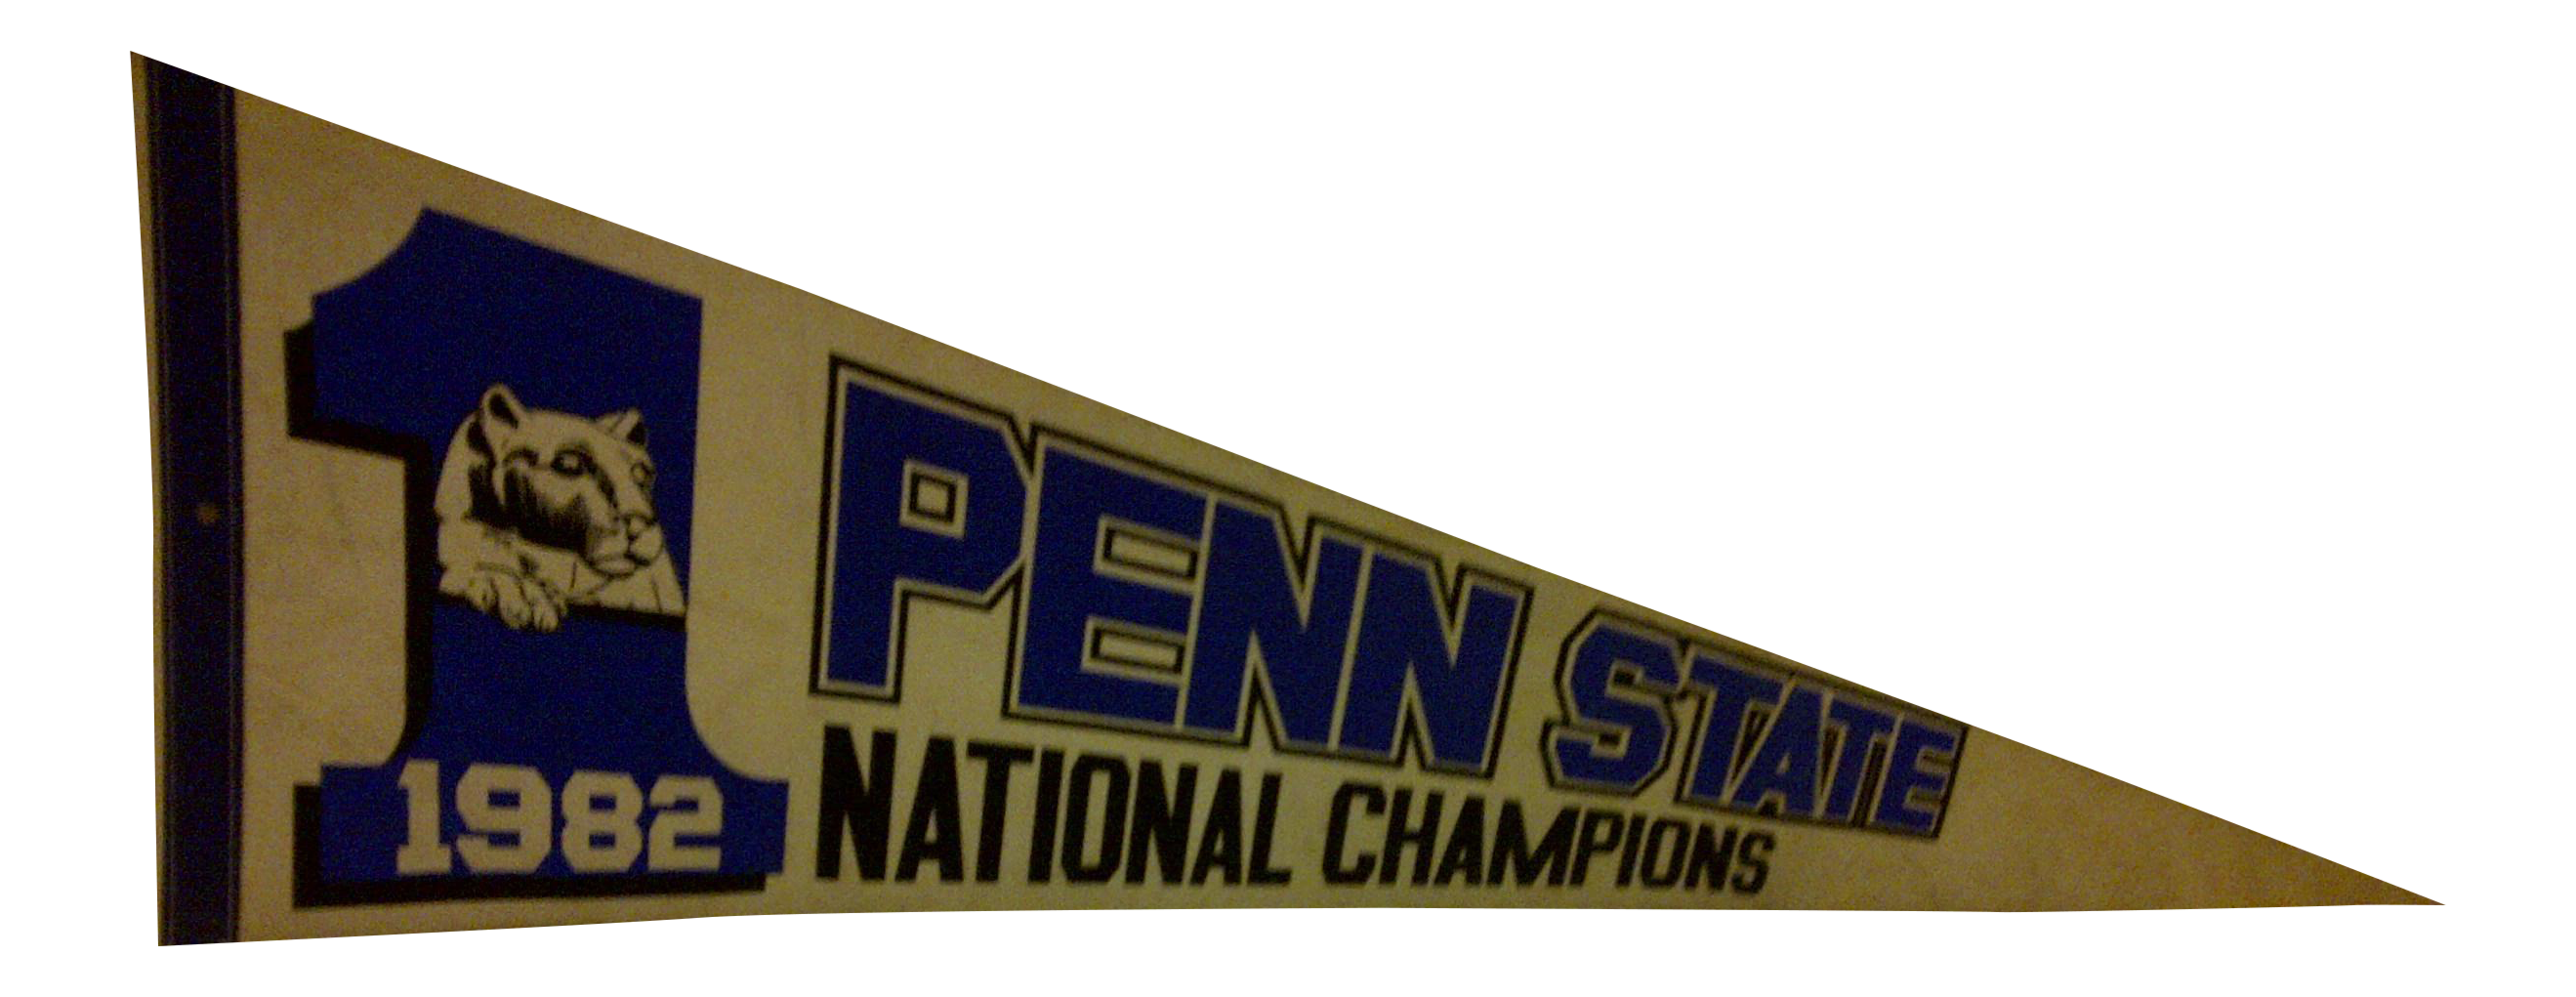 vintage penn state football national champions 1982 team With kitchen cabinet trends 2018 combined with penn state football wall art